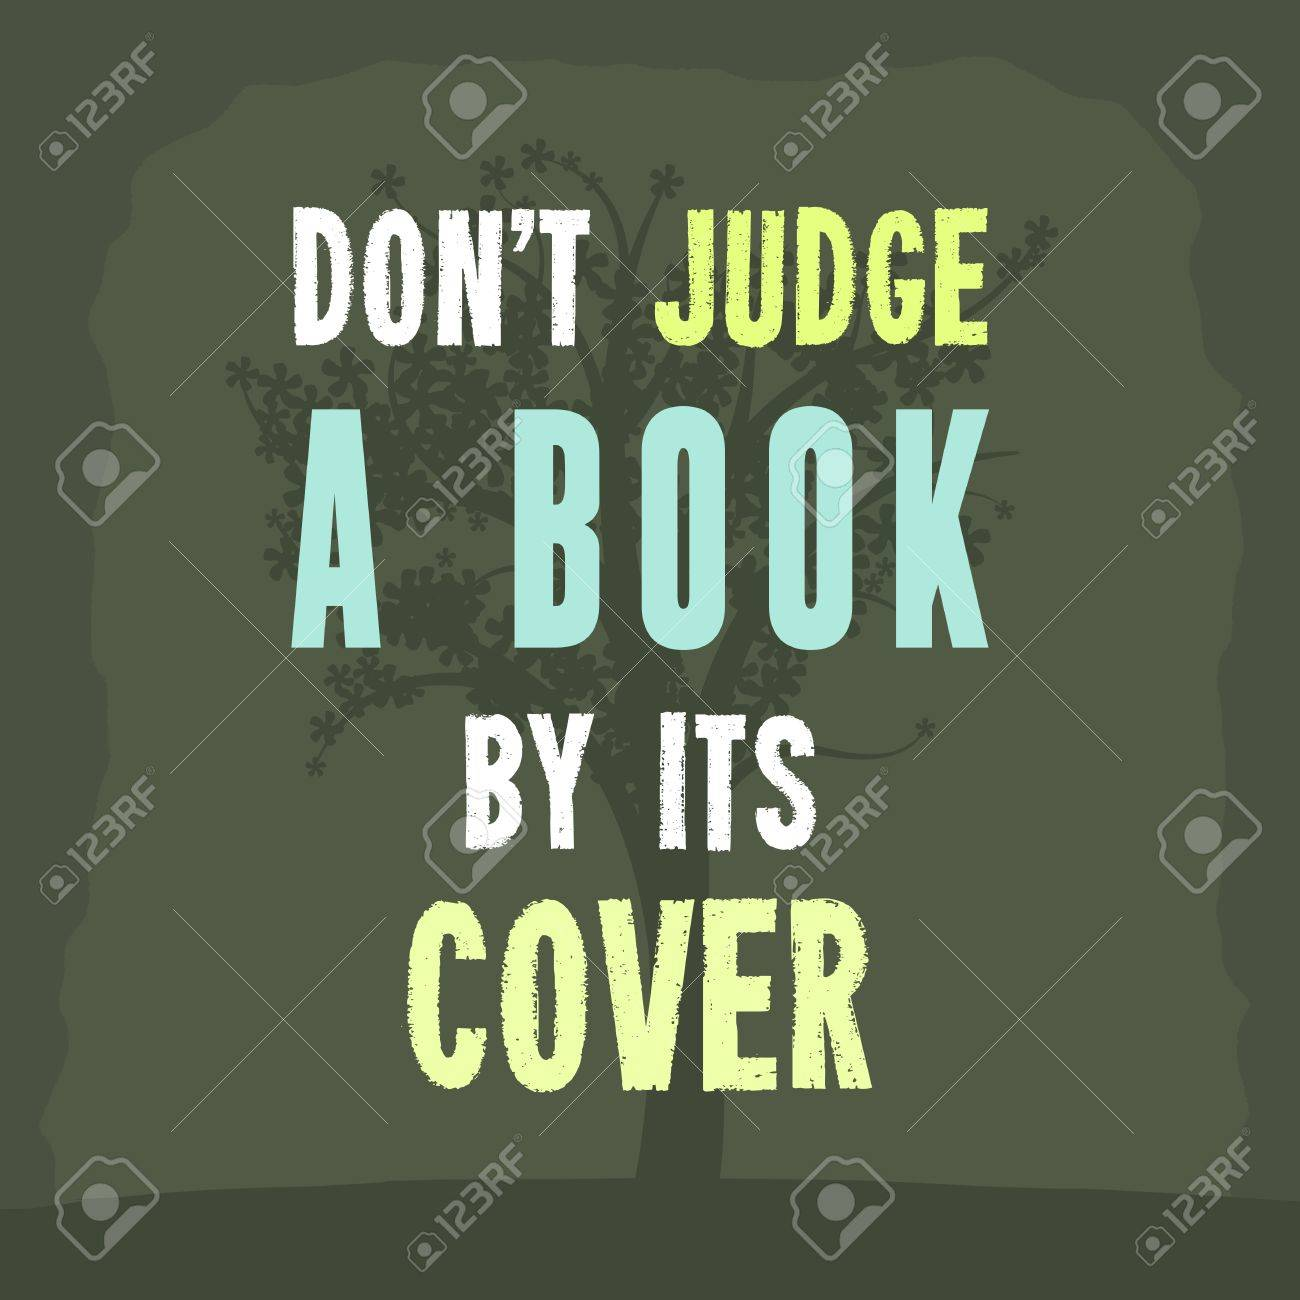 Dont Judge A Book By Its Cover Inspiration Poster With Motivational Proverb